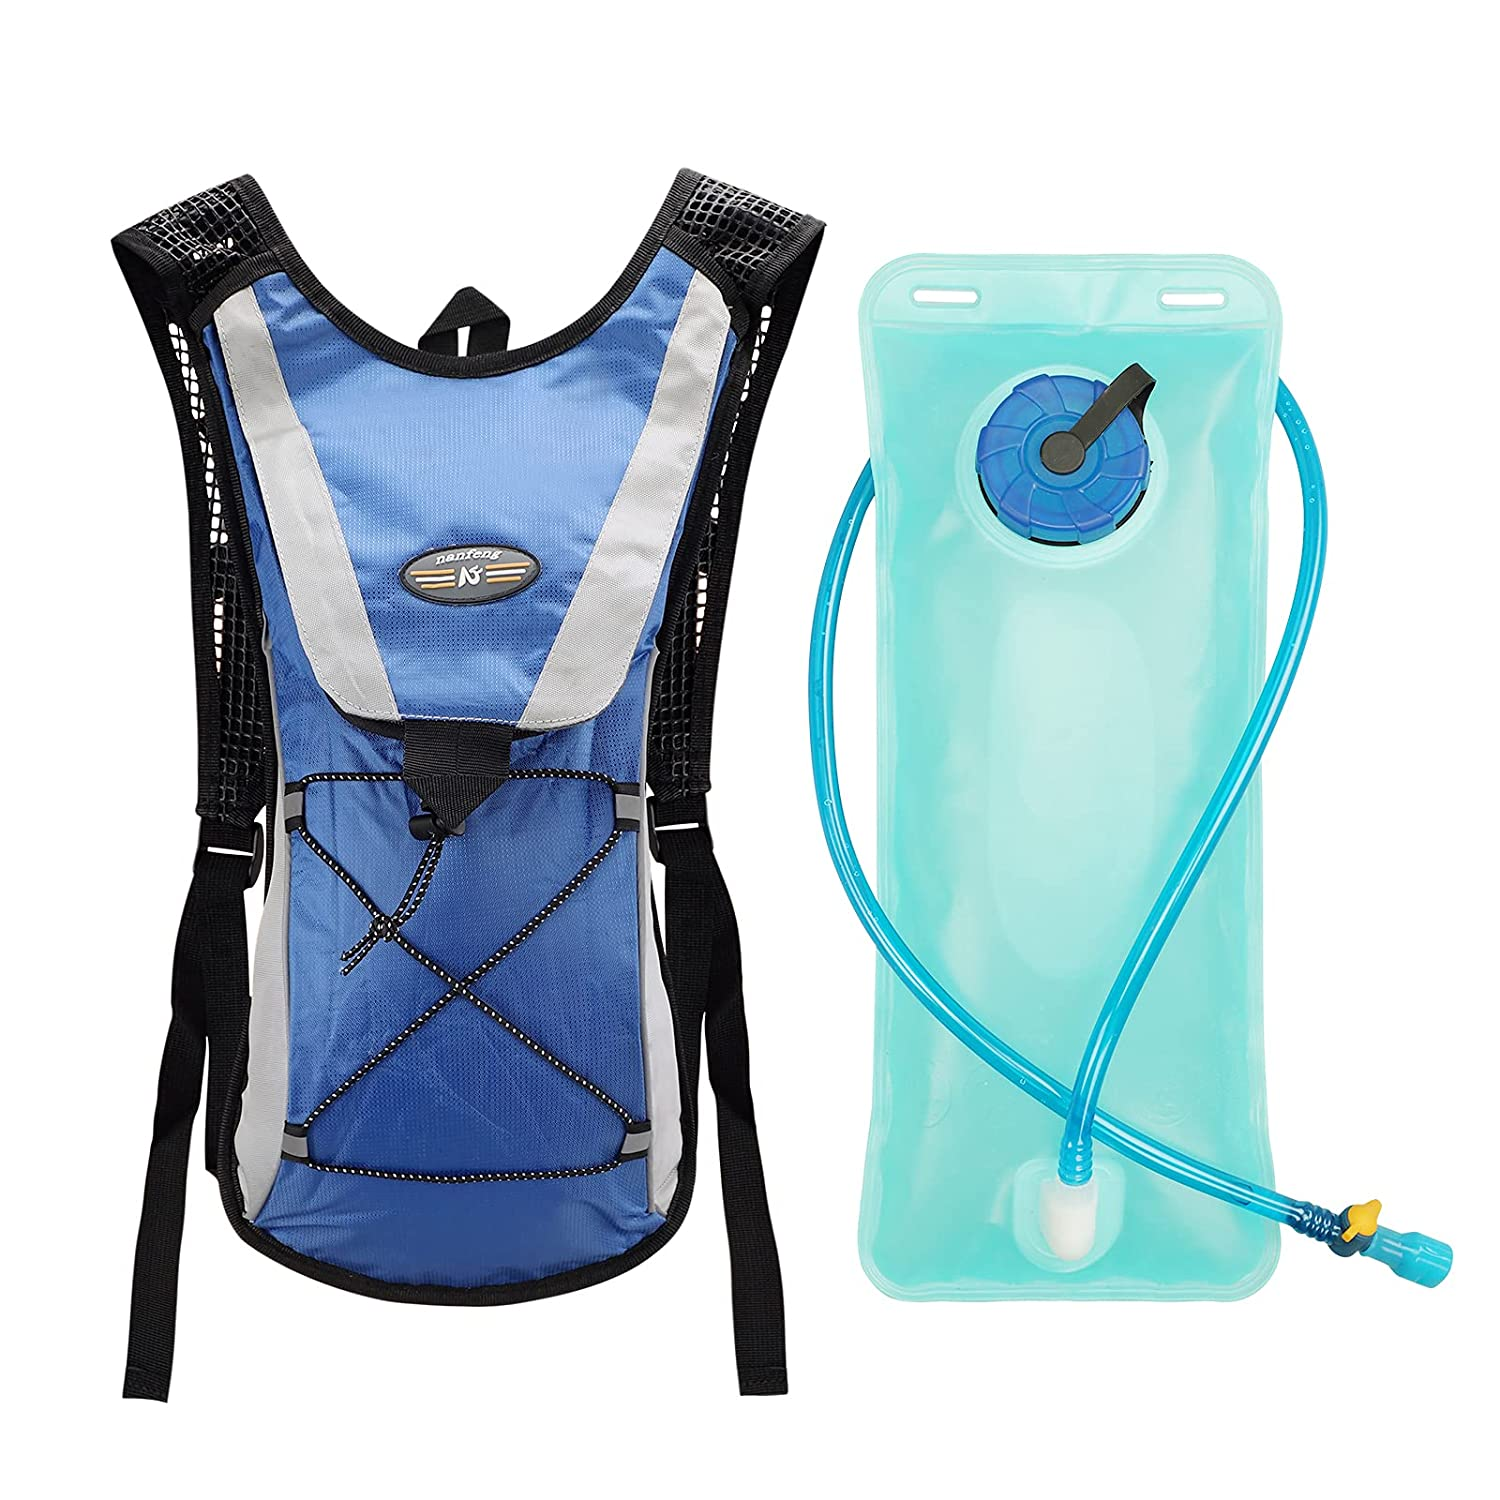 Hydration Challenge Finally resale start the lowest price of Japan ☆ Pack with 2L 67oz TPU BPA Leak-Proo Bladder Water Free